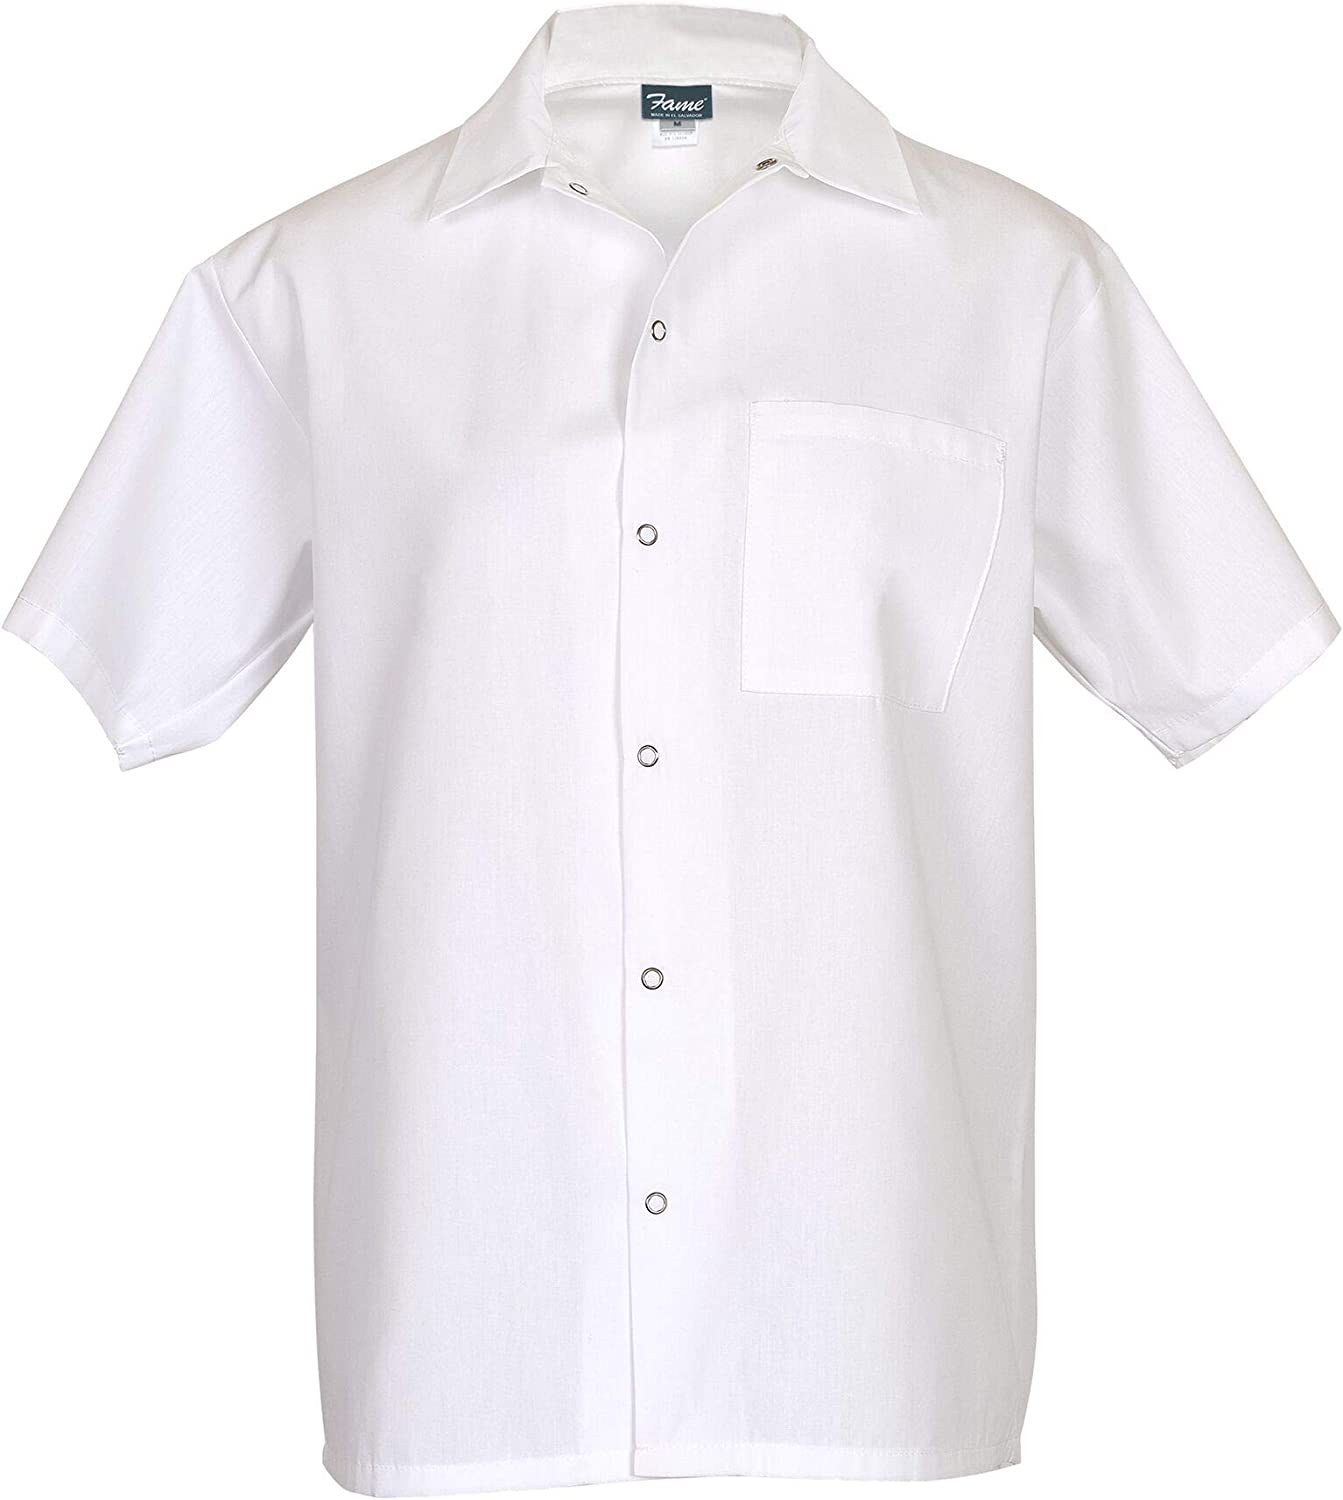 FAME Premium Short Sleeve Cook Shirt (White - 2XL) C25-81167